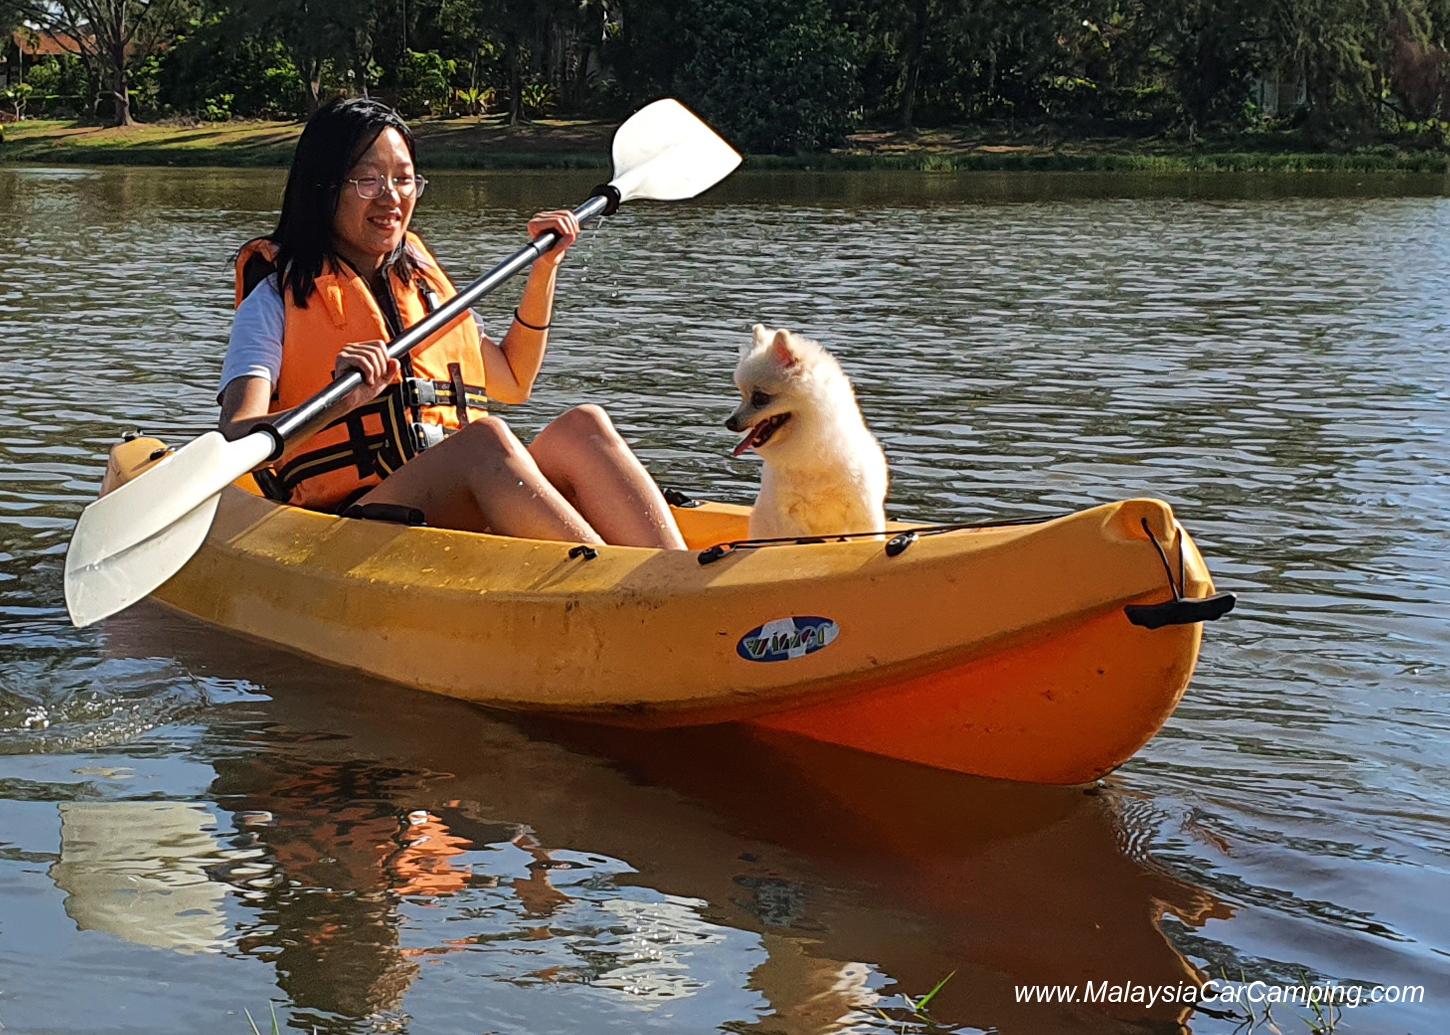 kayak_with_dogs_camping_with_dogs_puppy_lakeside_camping_malaysia_car_camping_malaysia_campsite-8